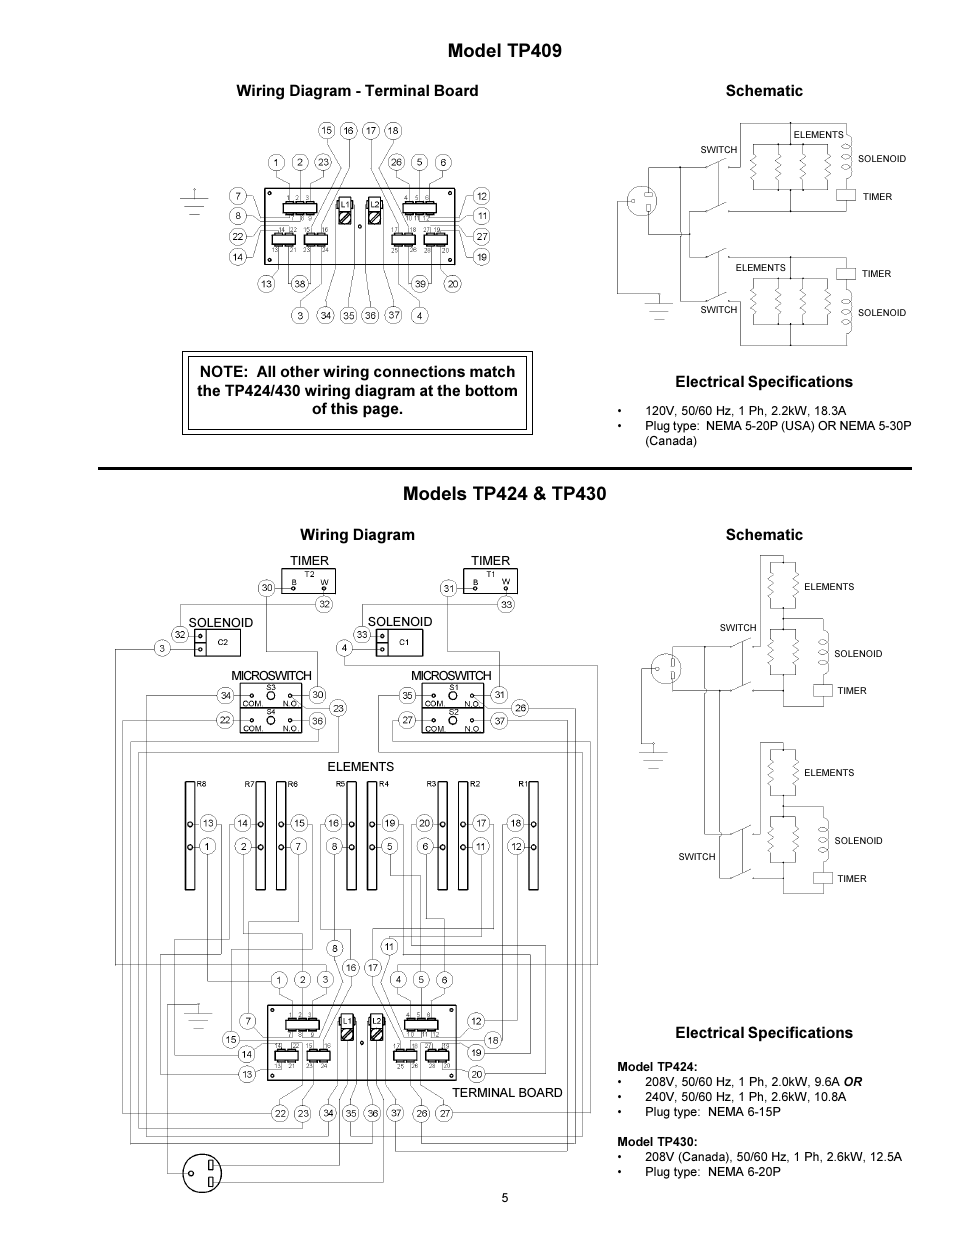 Model Tp409 Toastmaster Tp224 En User Manual Page 5 8 Wiring Diagram For Nema 6 20p Plug